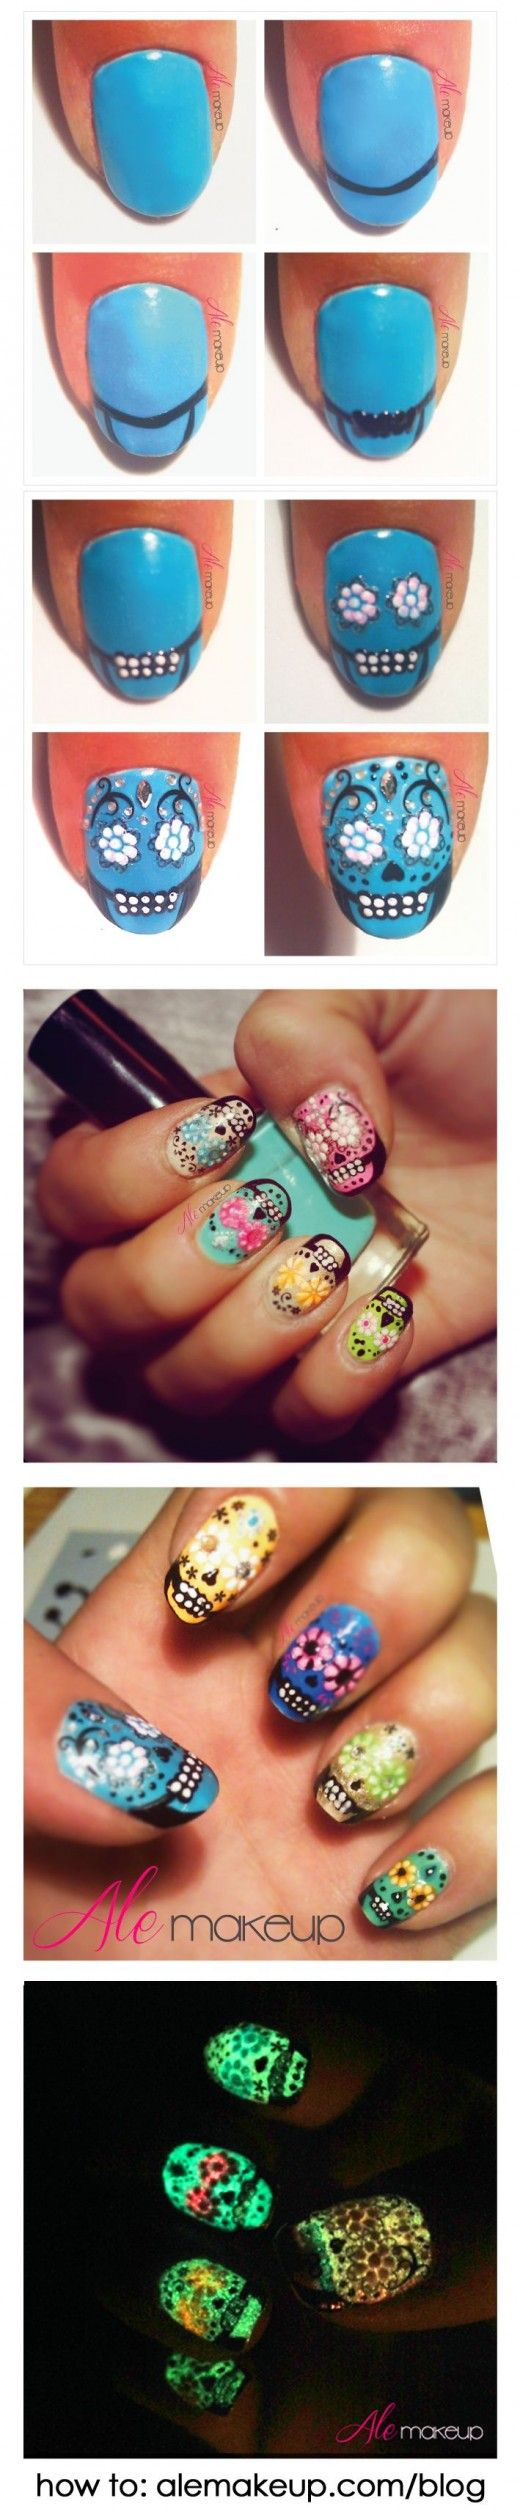 awesome halloween nail art designs, use glow in the dark paint for super cool nails!